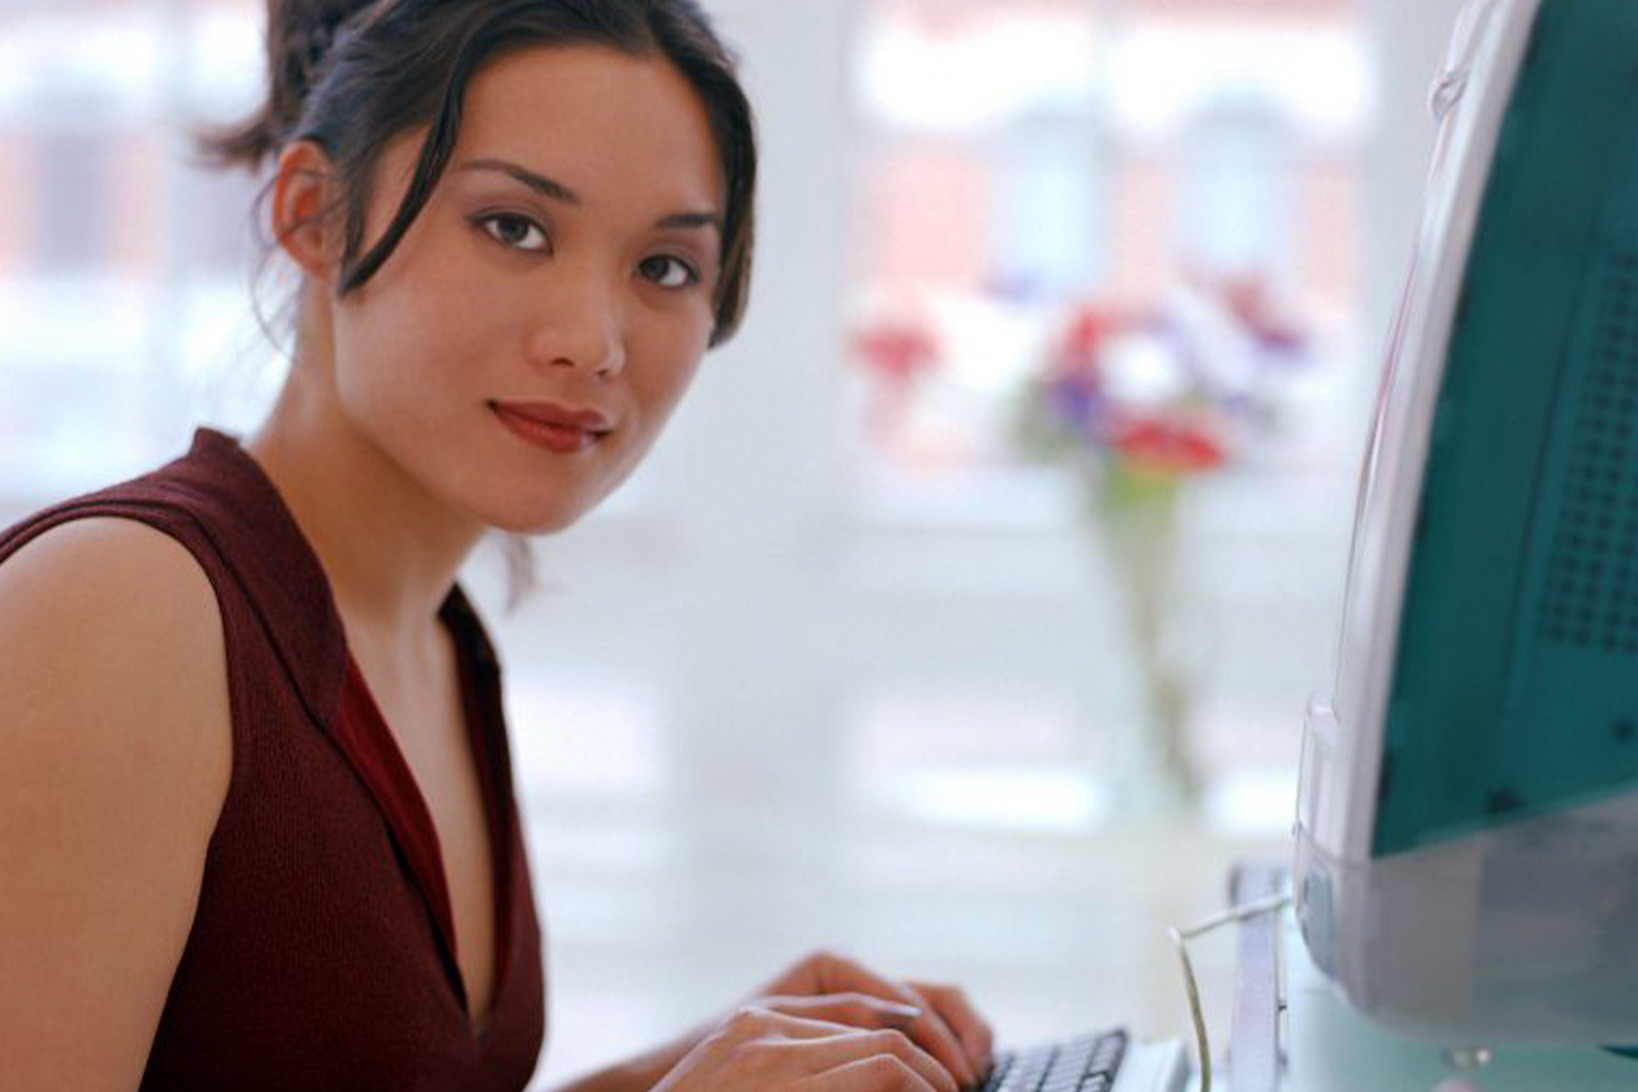 A woman smiling slightly and looking towards the camera while her hands rest on the keyboard of an old Mac desktop computer.